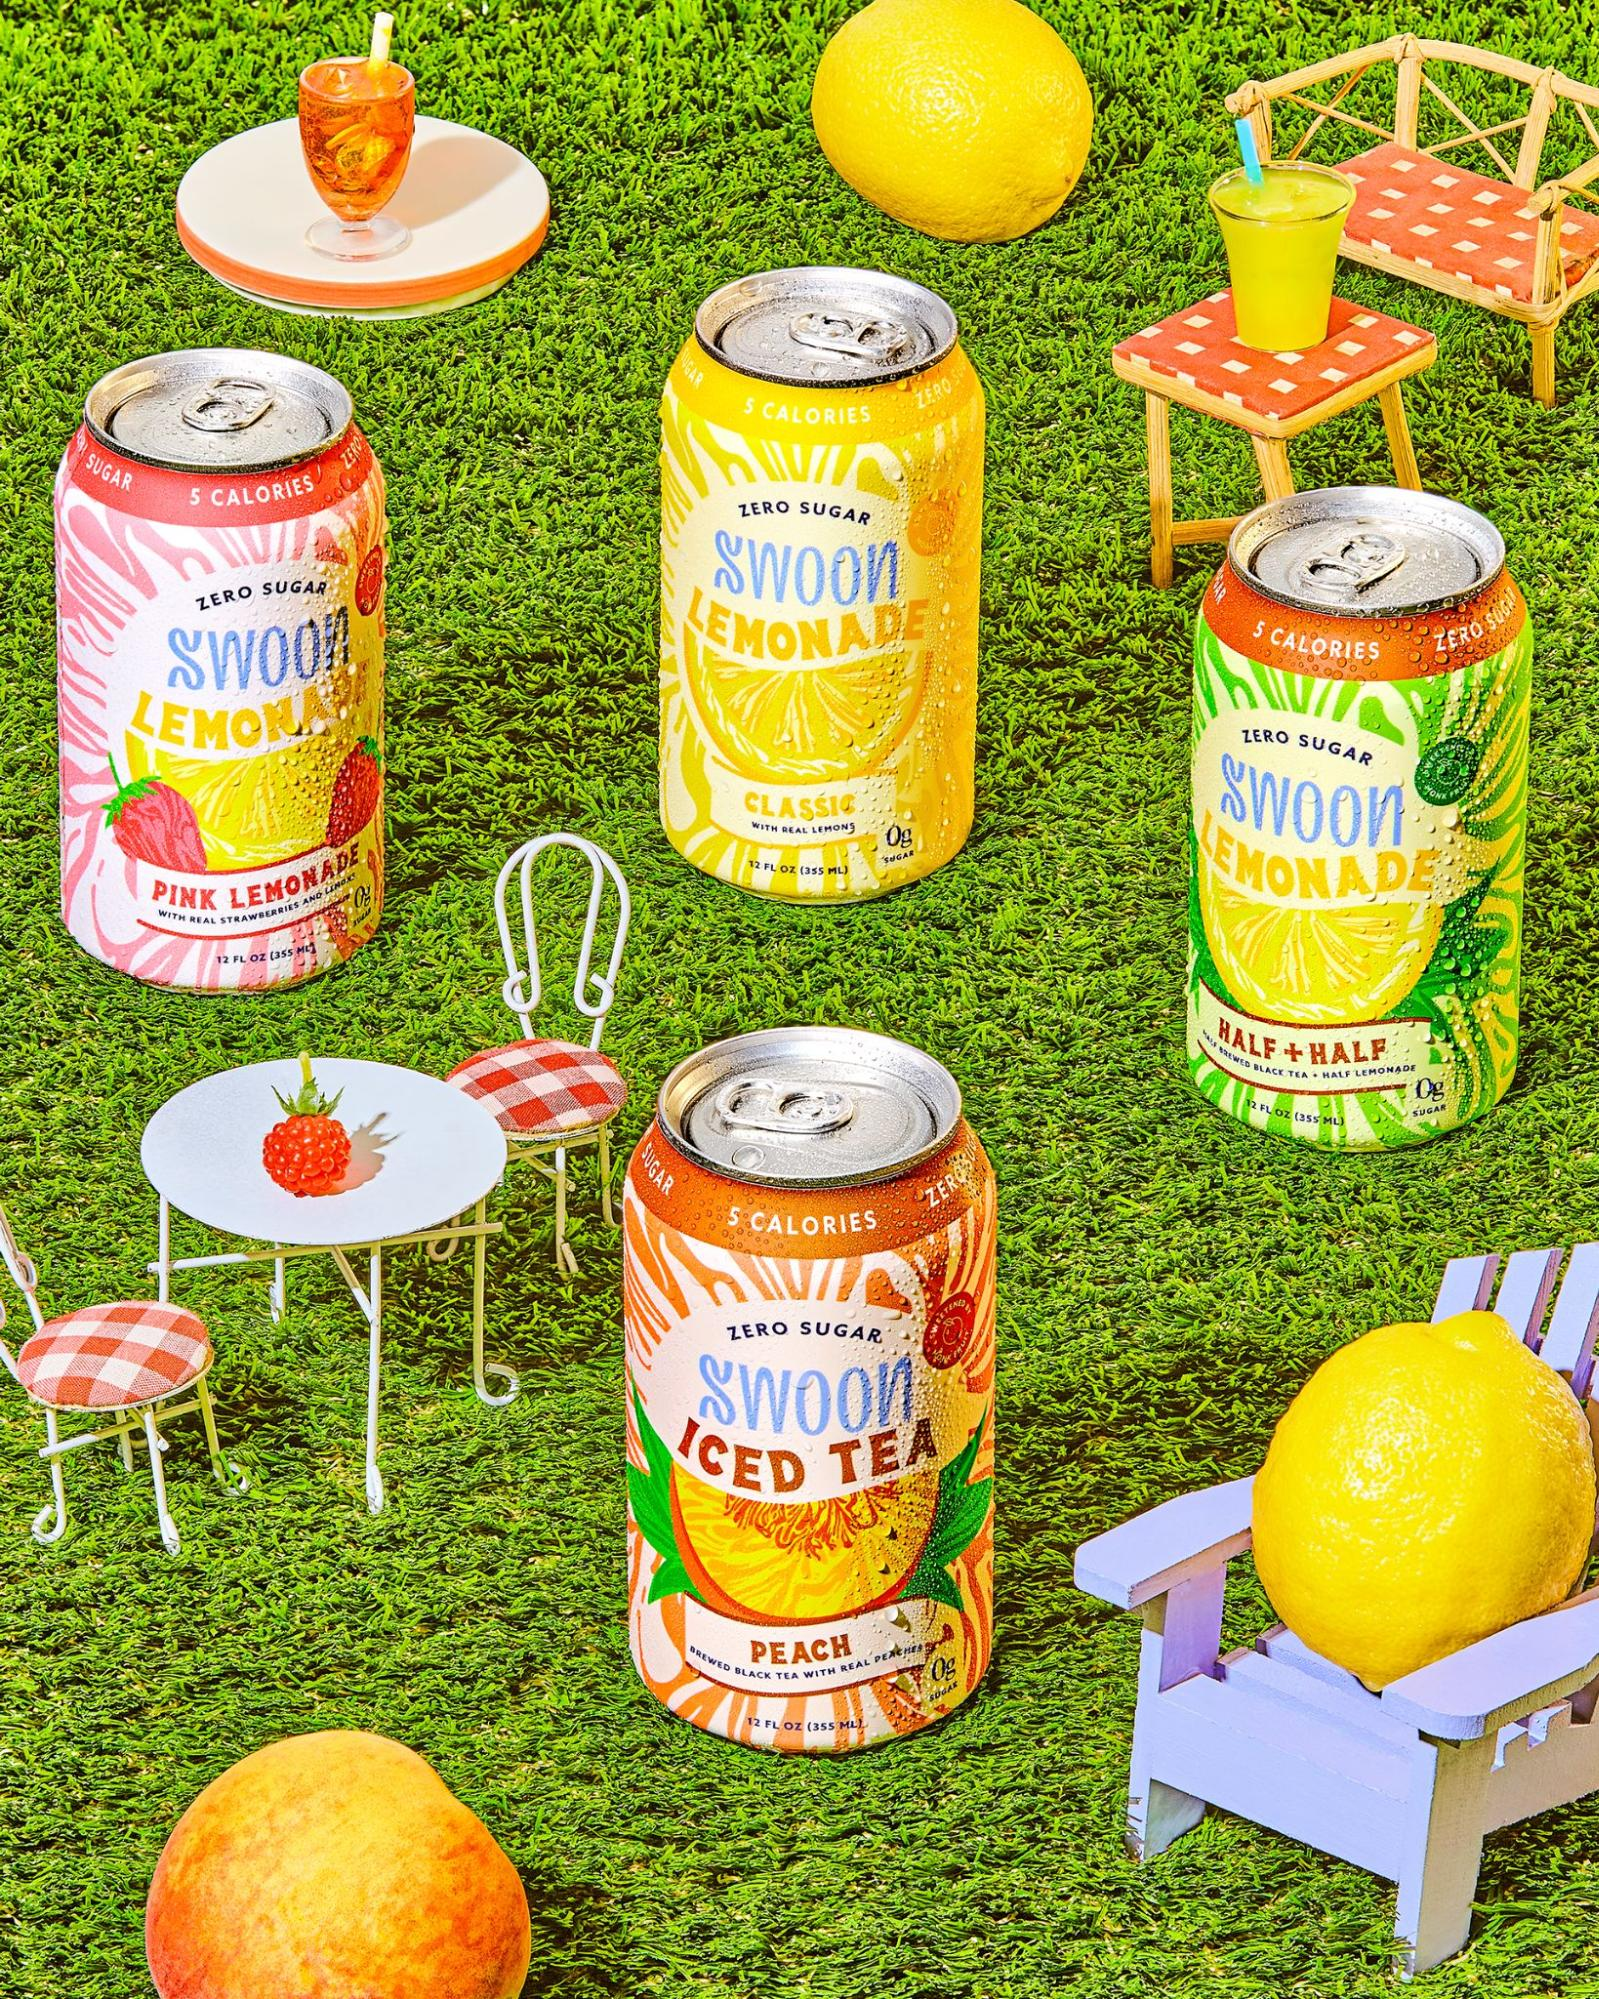 Four different beverages by Swoon are displayed against a grass background.